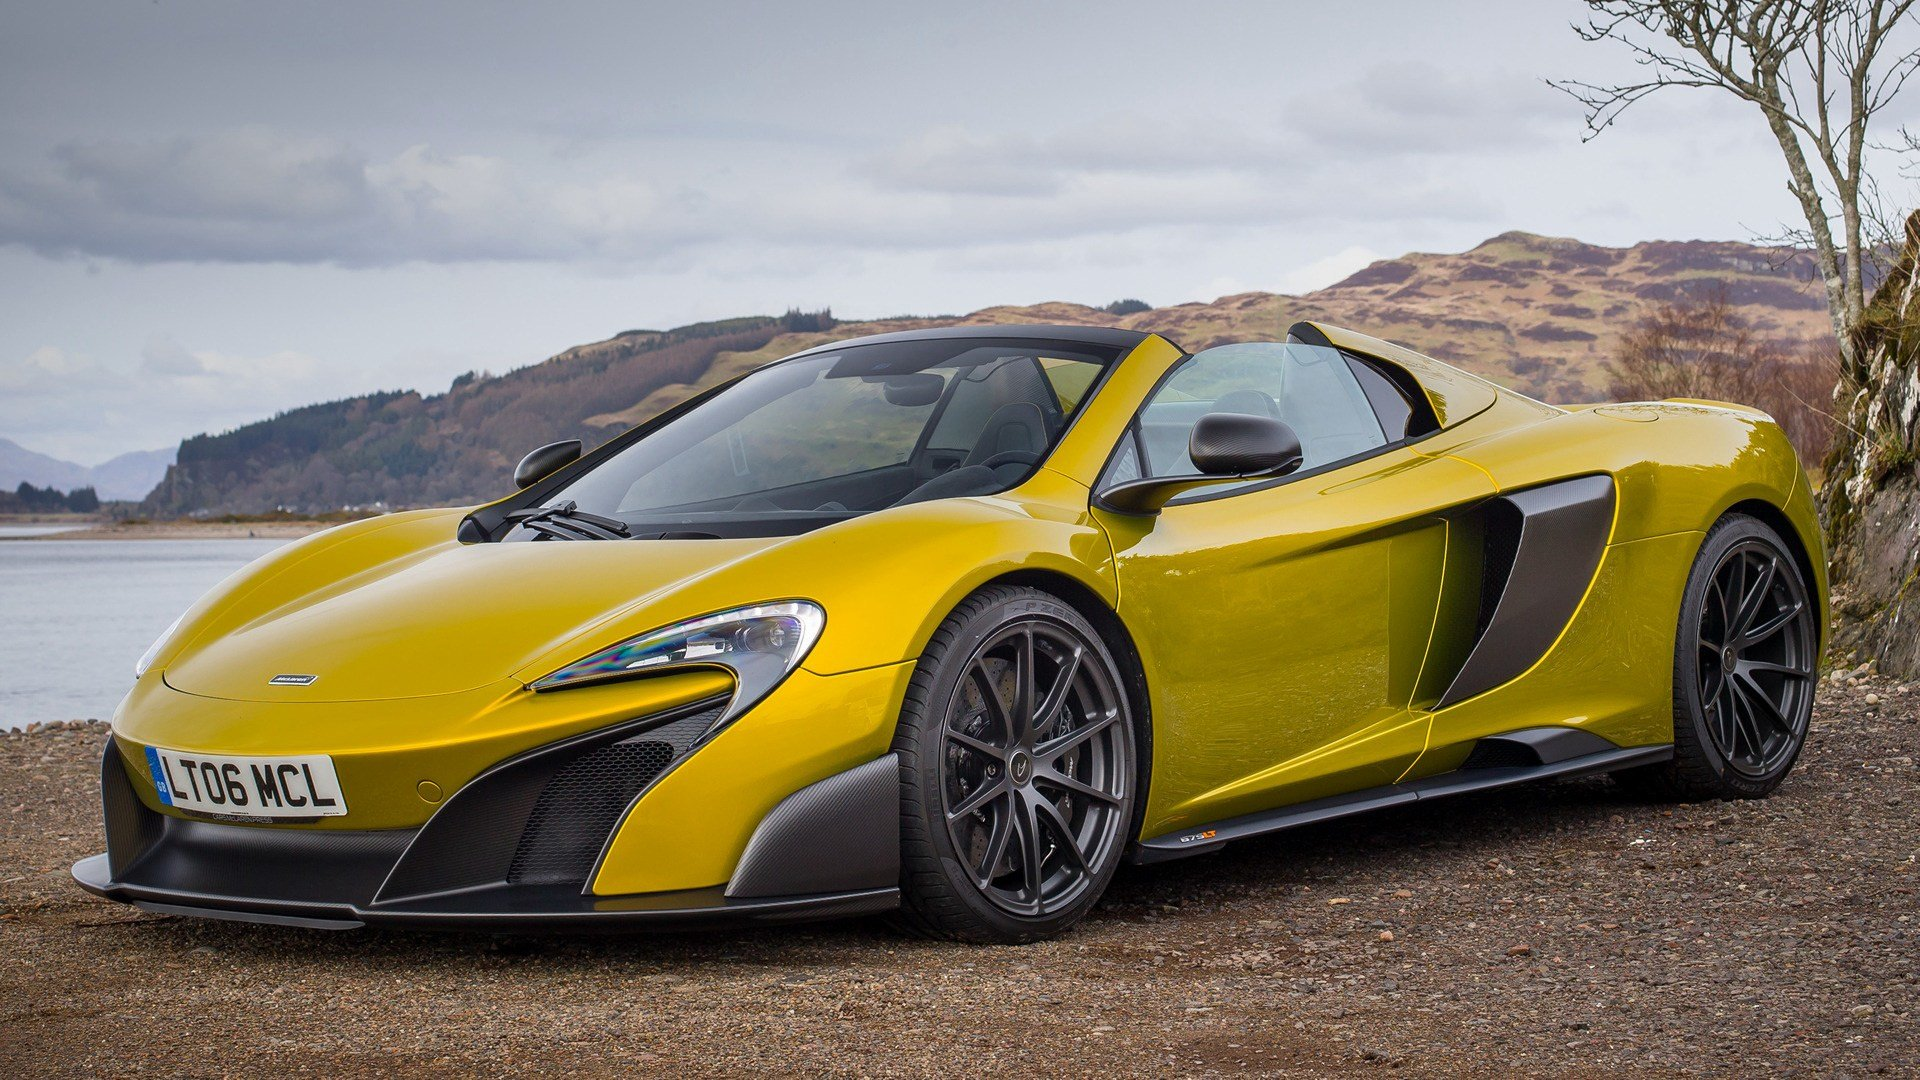 Latest 2016 Mclaren 675Lt Spider Wallpapers And Hd Images Car Free Download